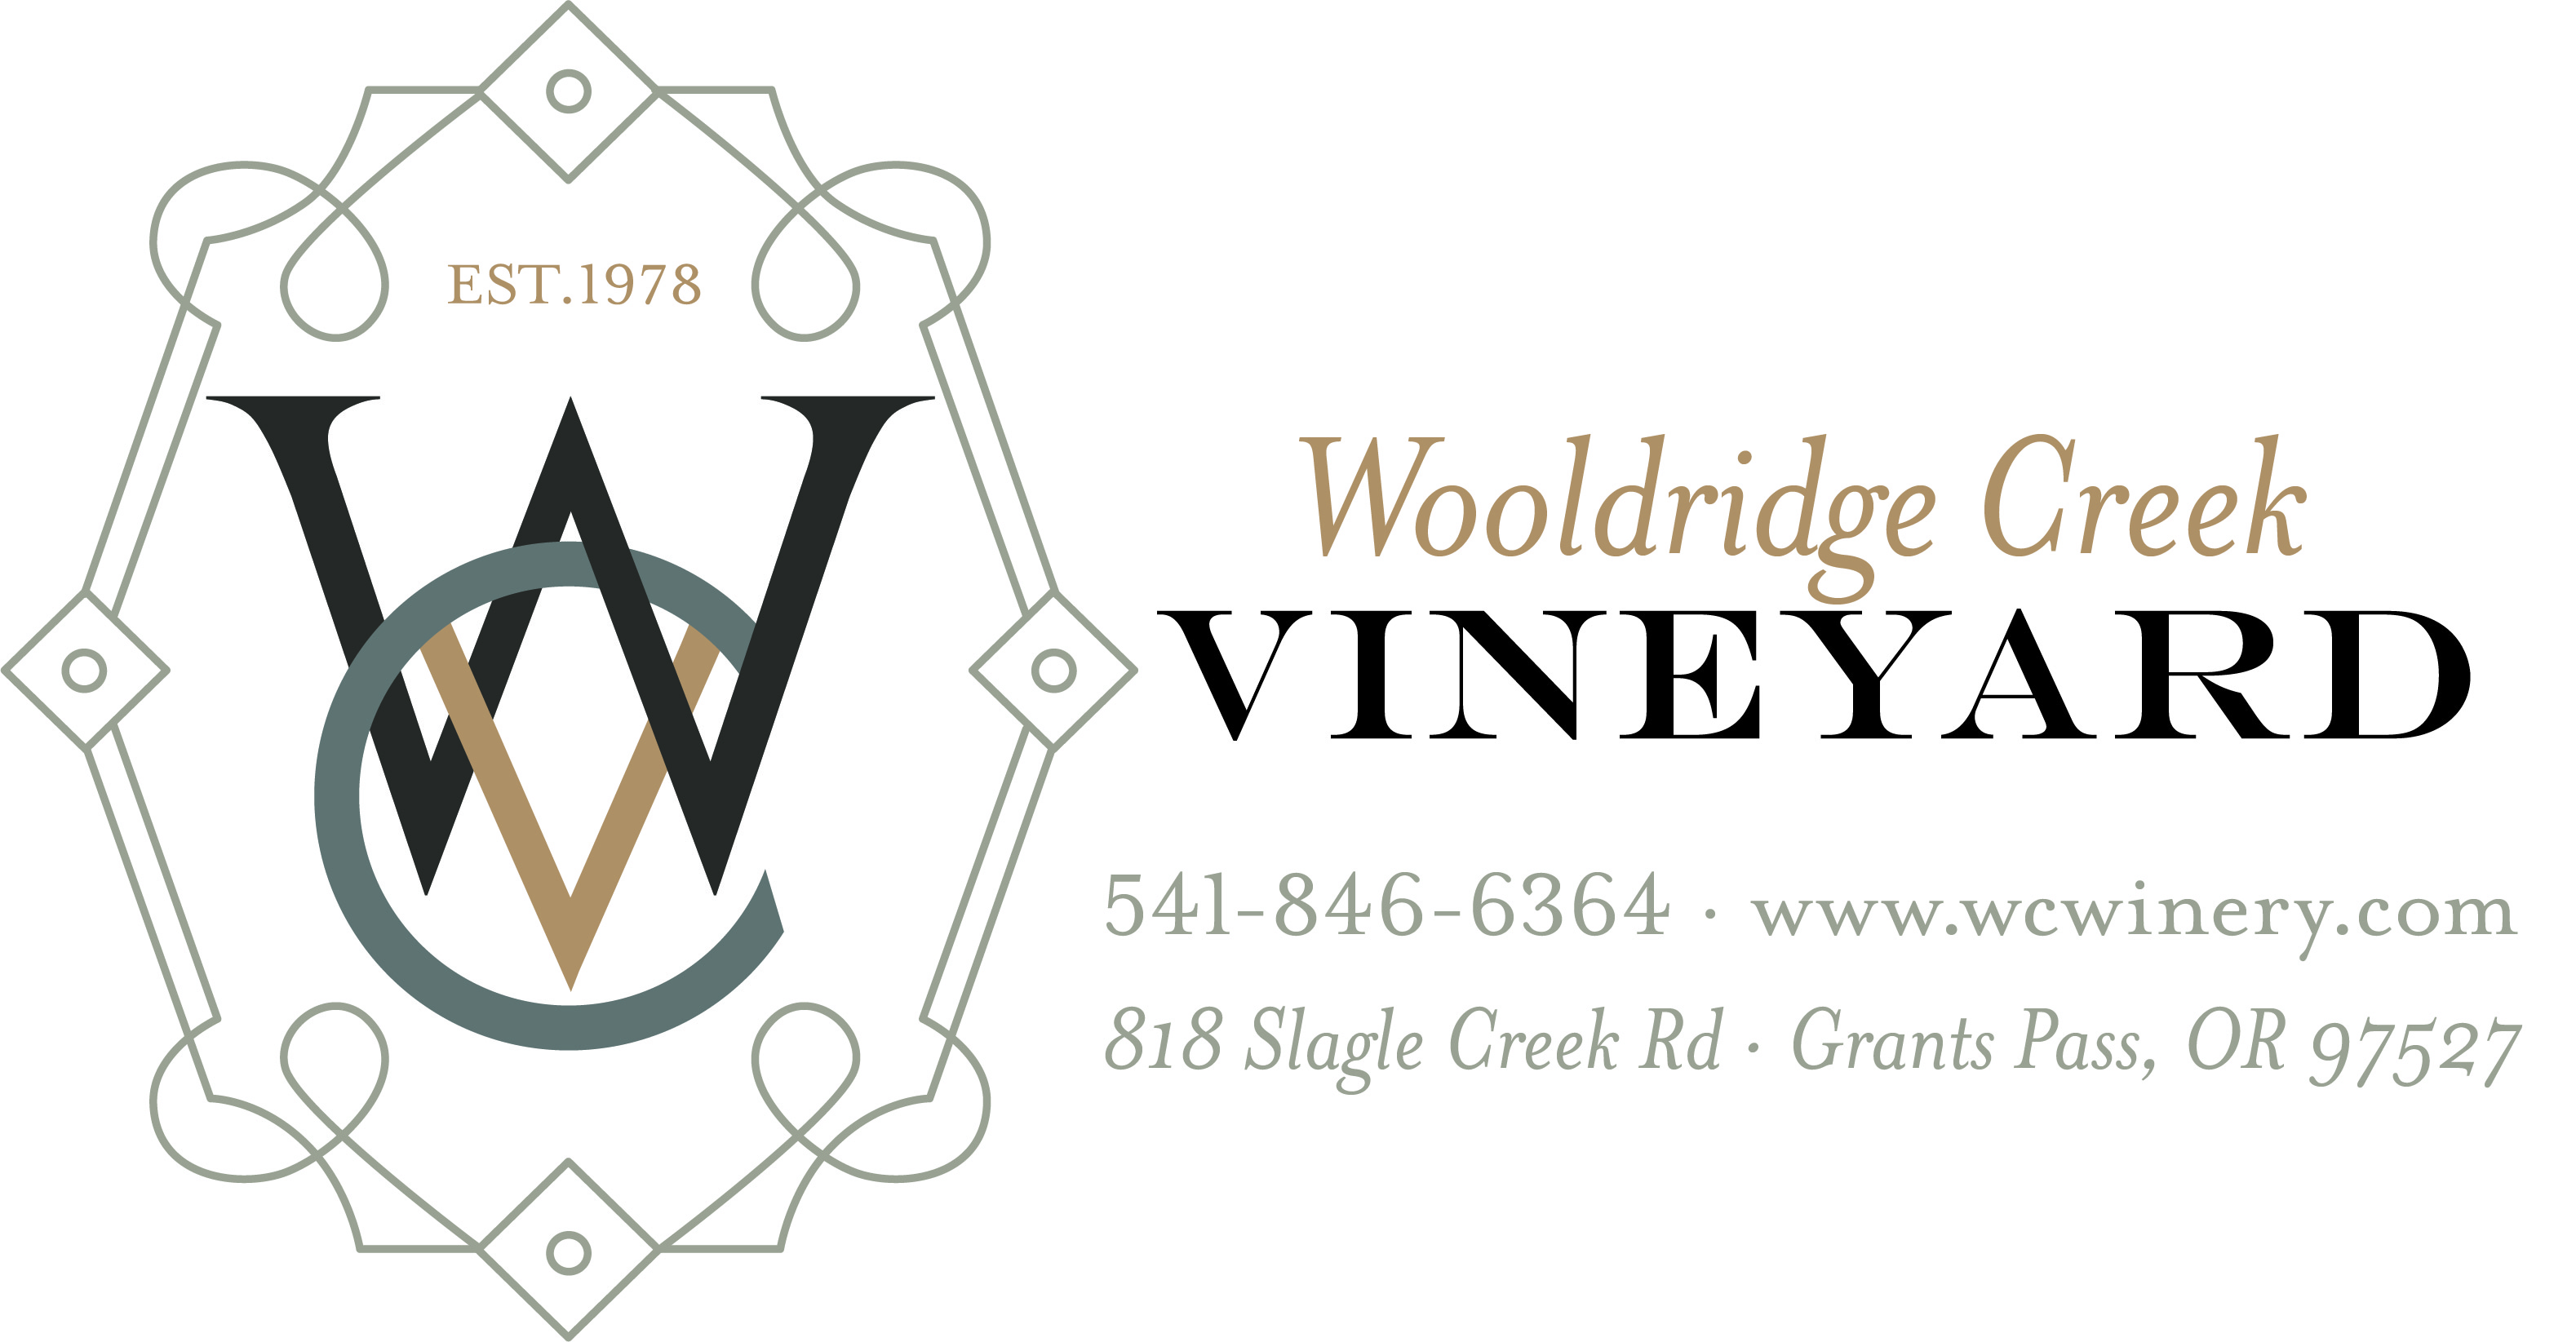 Wooldridge Creek Vineyard & Winery